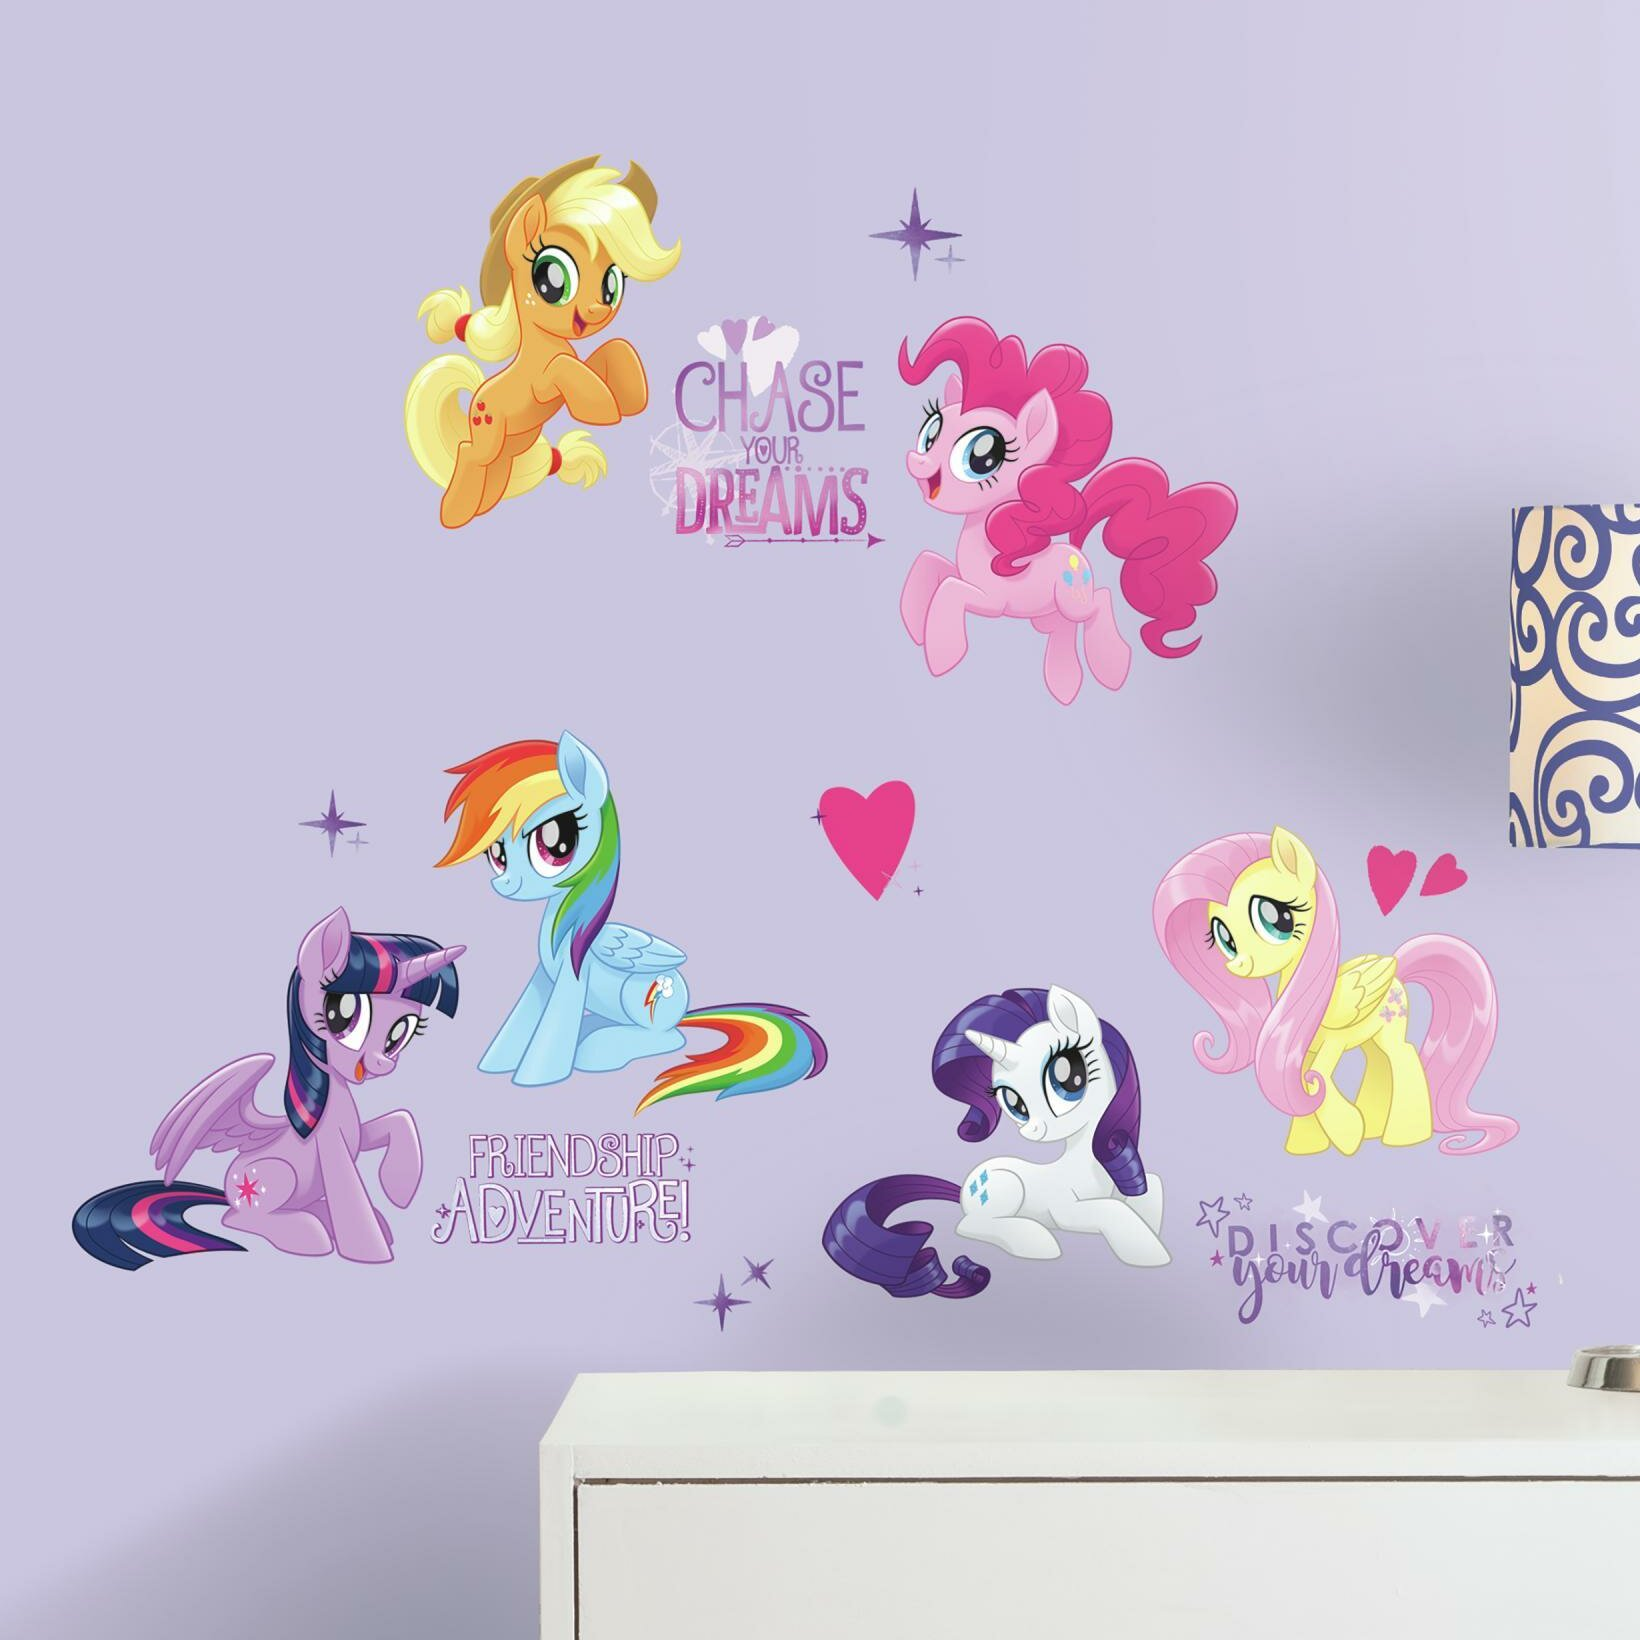 Room Mates My Little Pony The Movie Peel And Stick Wall Decals Reviews Wayfair